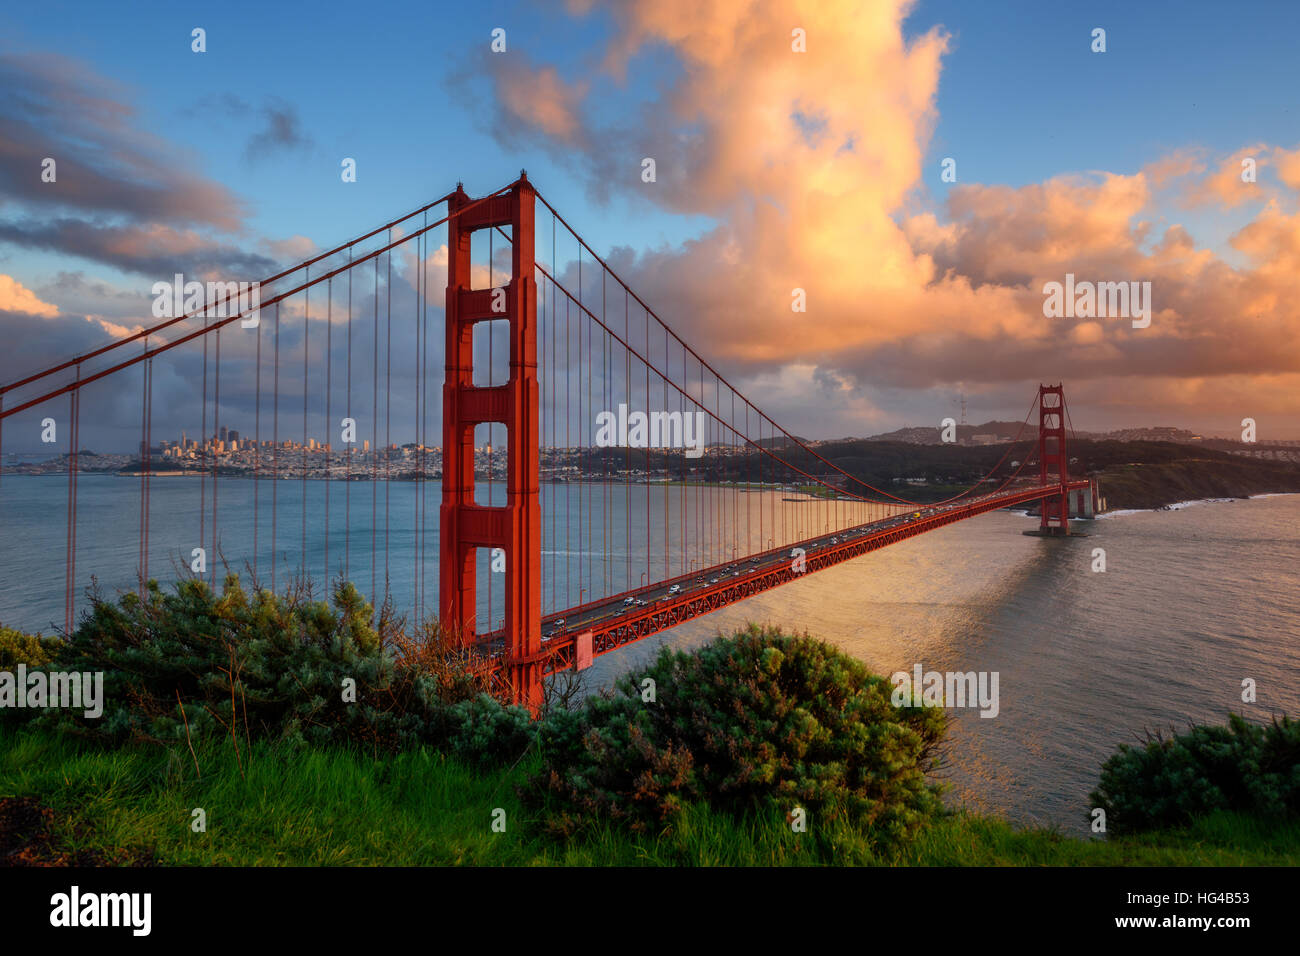 Beautiful Golden Gate the entrance to San Francisco, California, USA. Sunset and orange cloud in the sky. - Stock Image